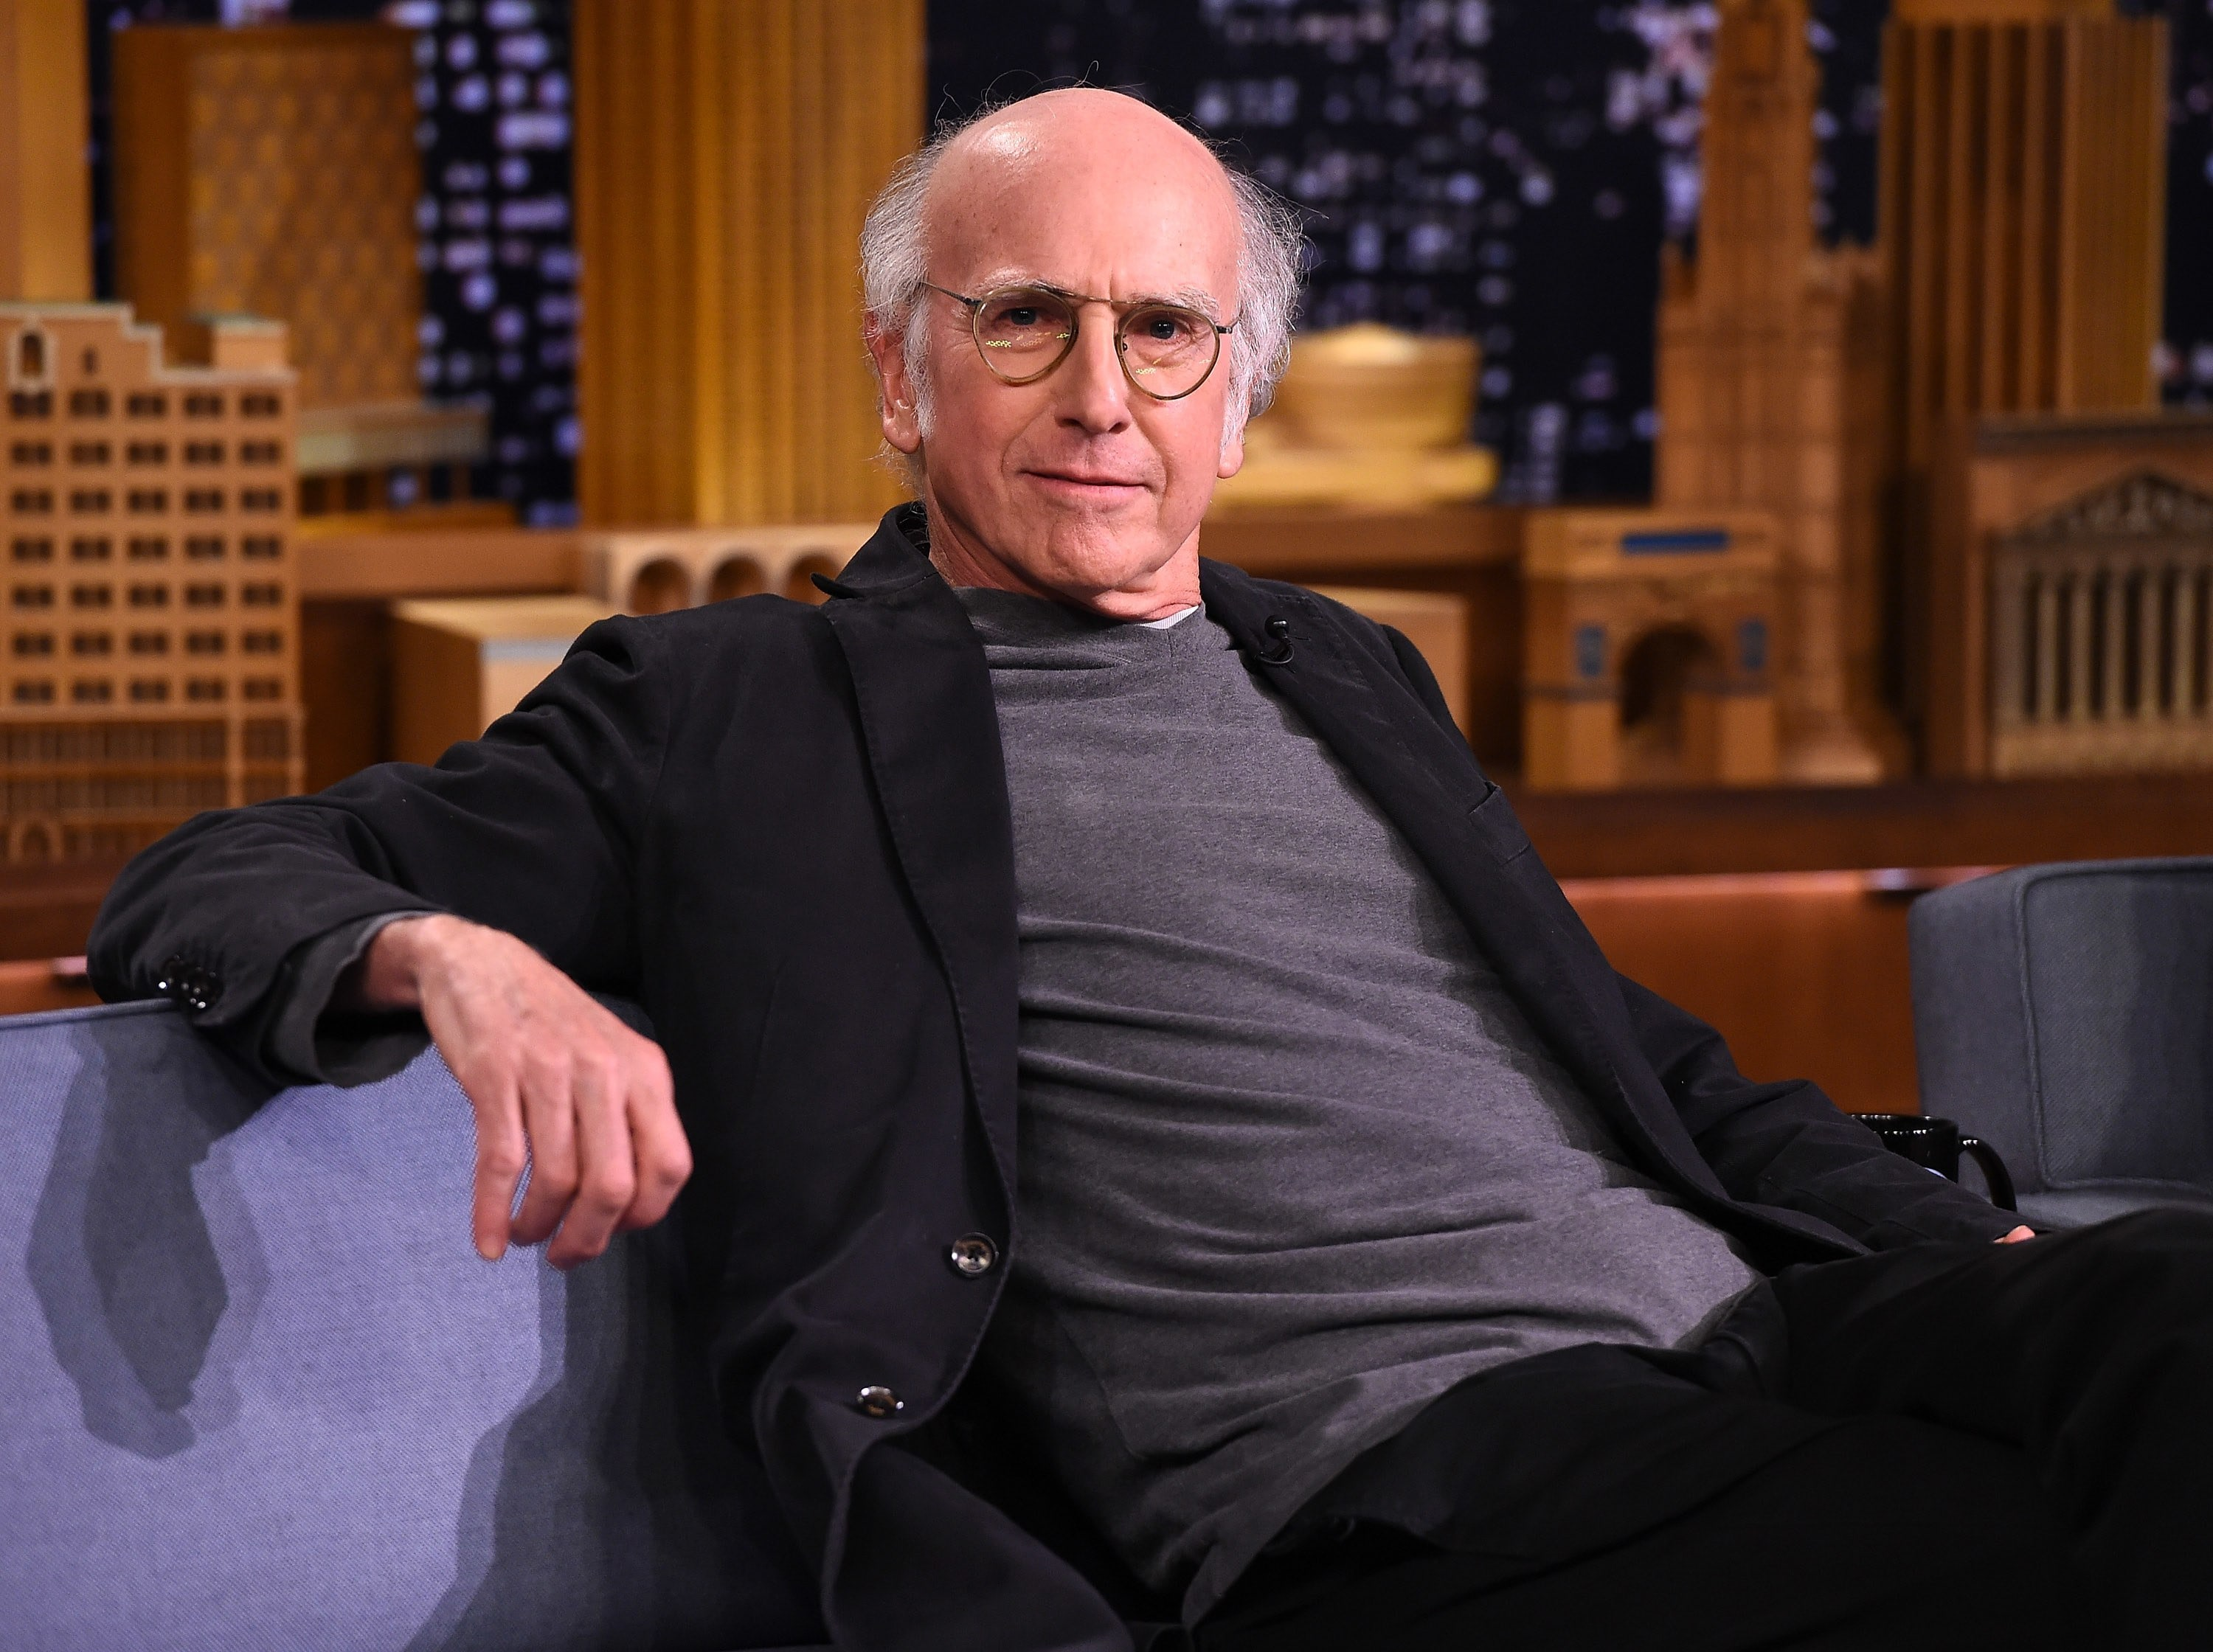 Larry David Full hd wallpapers